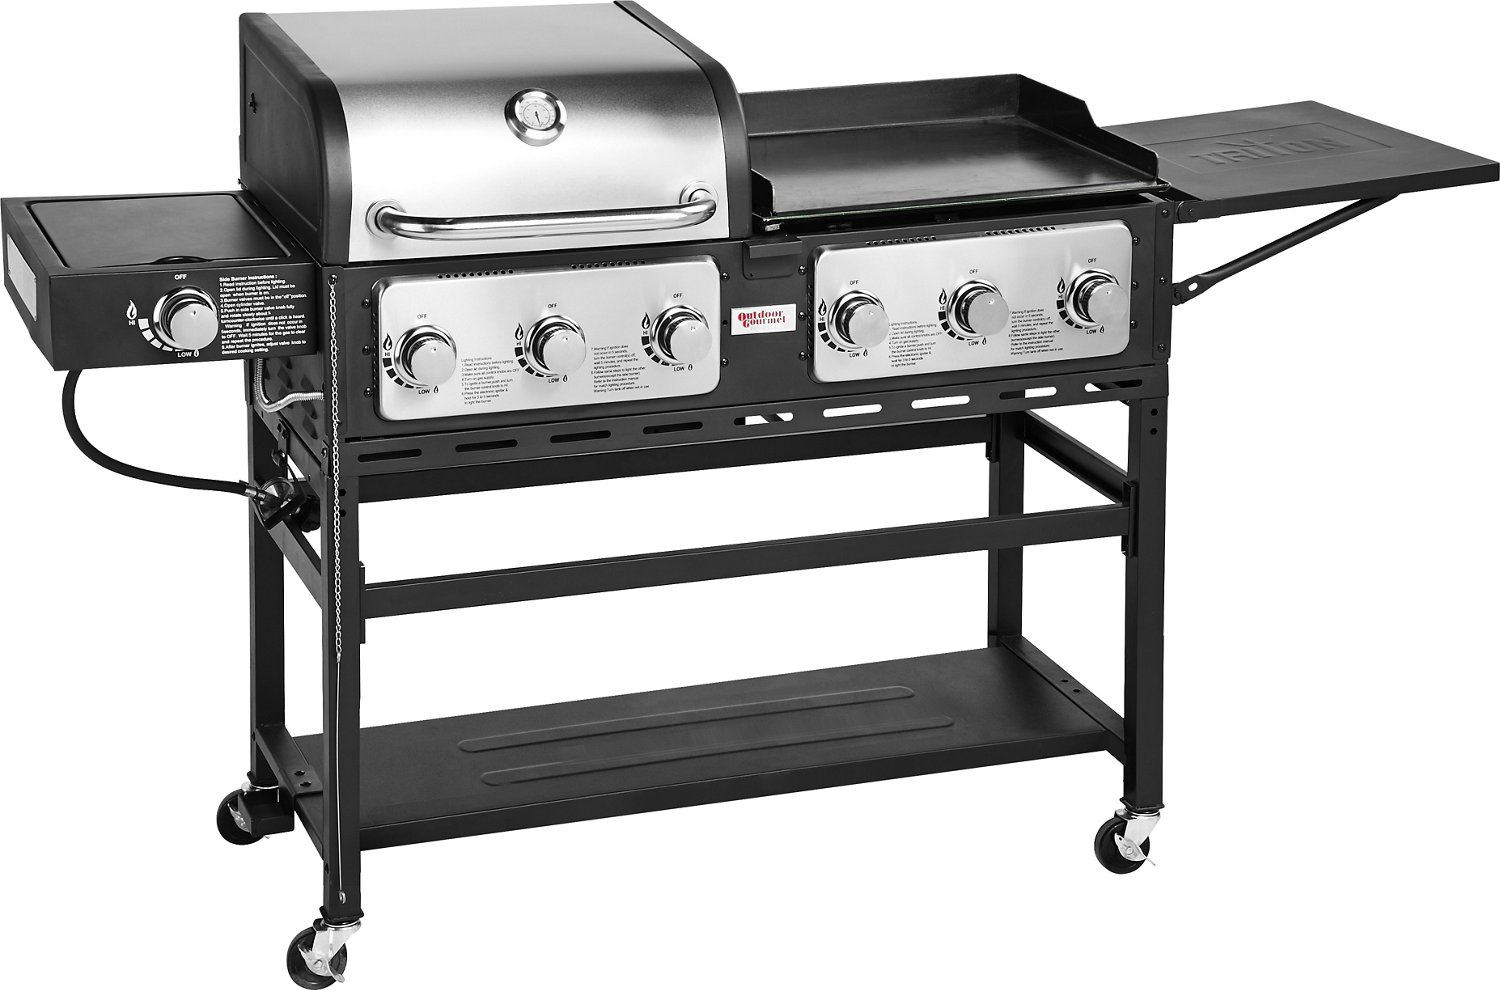 Outdoor Grill Outdoor Gourmet Triton 7 Burner Propane Grill And Griddle Combo